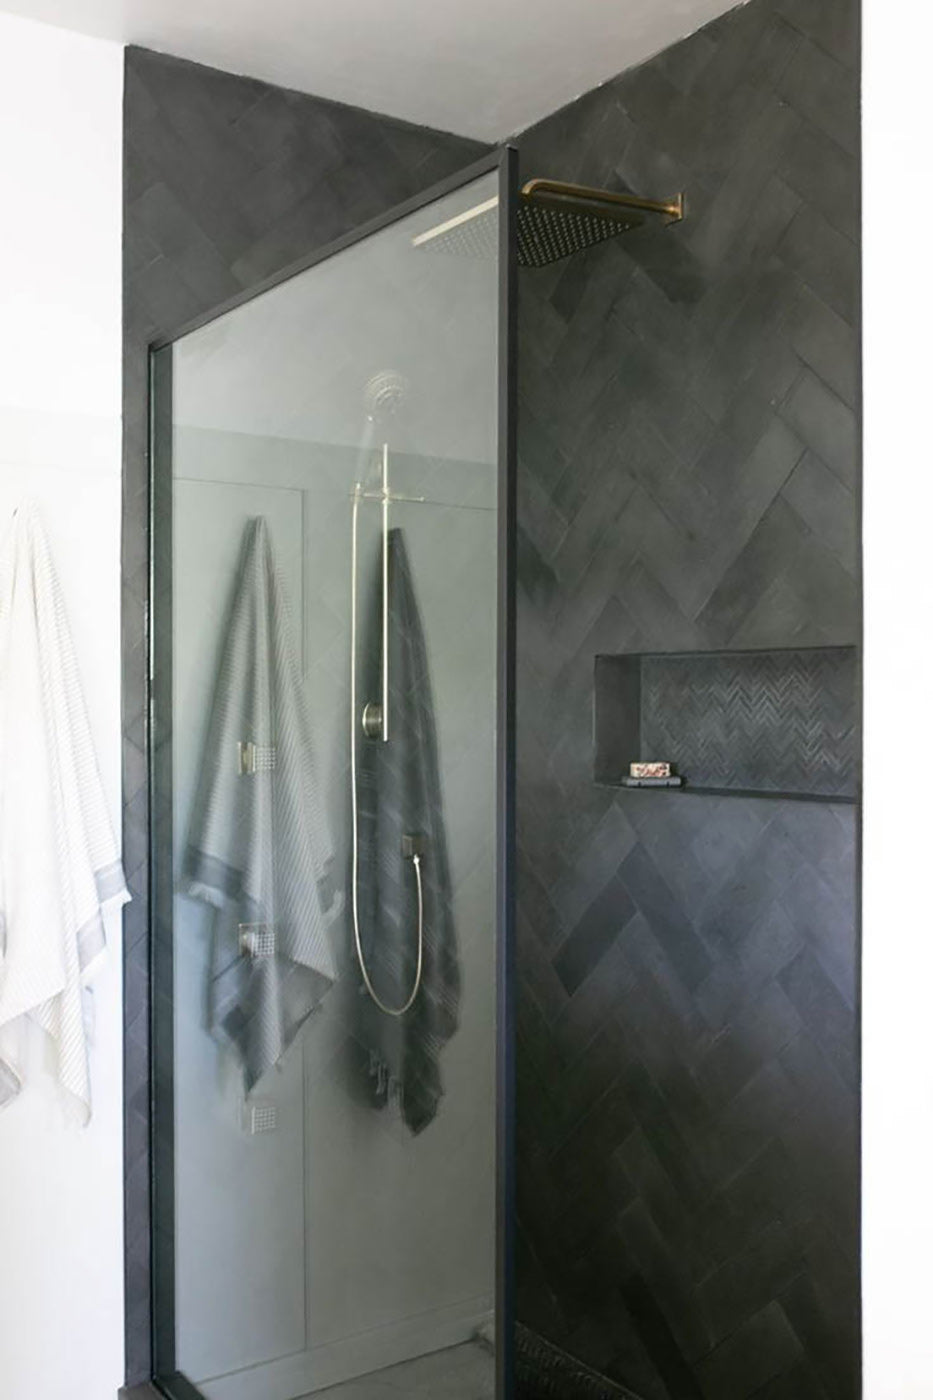 This luxurious black herringbone tiled shower replaced a once-dated bathtub in this couple's master bathroom See the full makeover, featuring Penthouse paint by Clare, now!